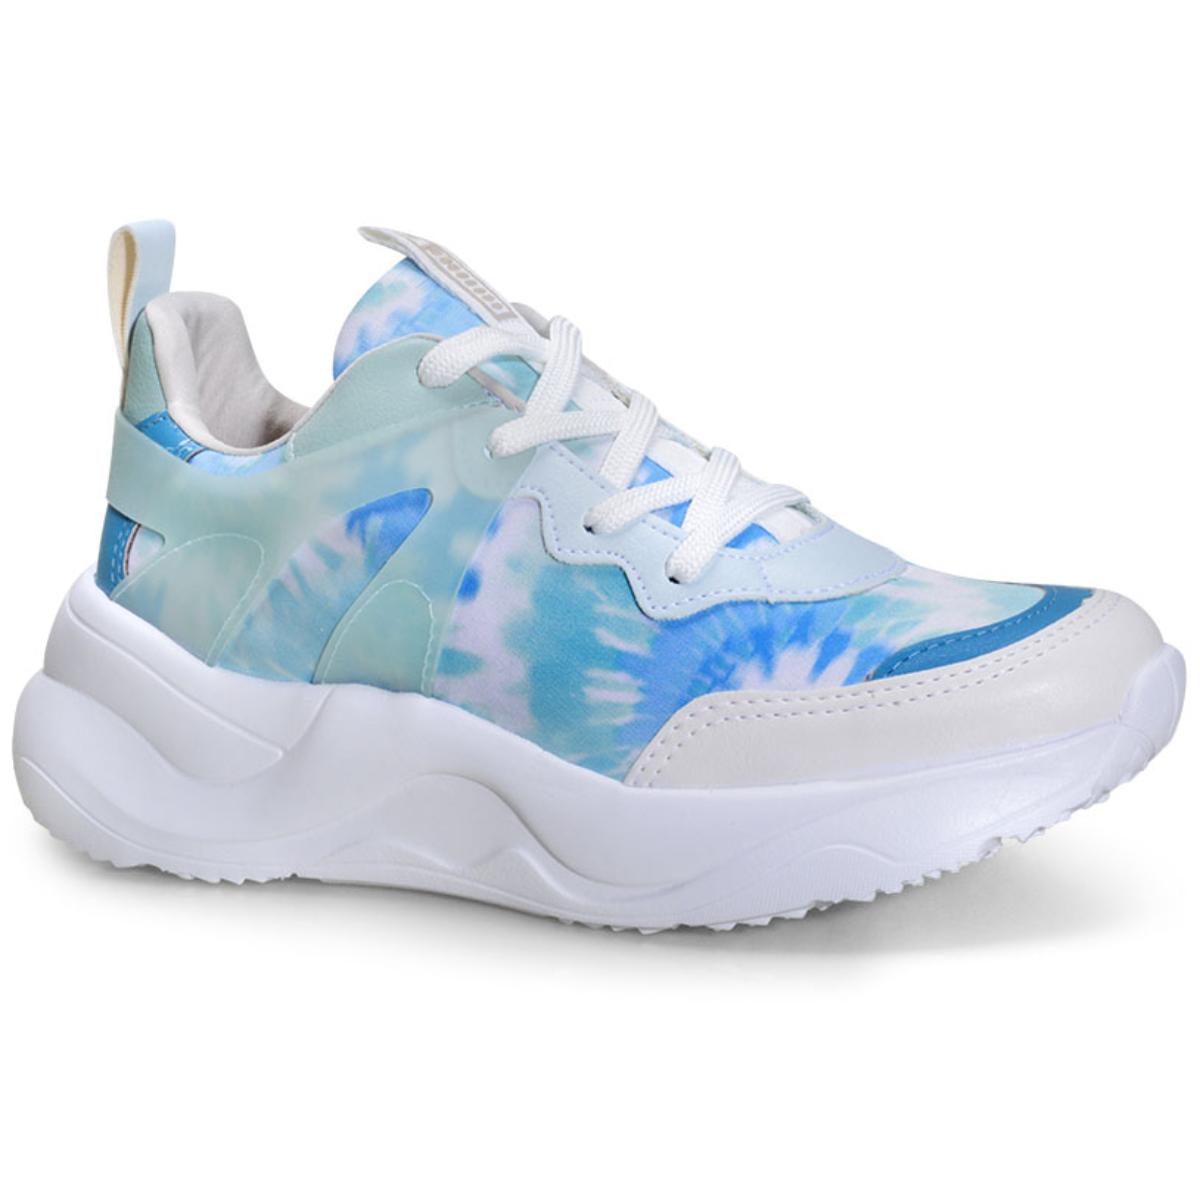 Tênis Feminino Via Marte 20-14907 Tie Dye Chantilly /acqua